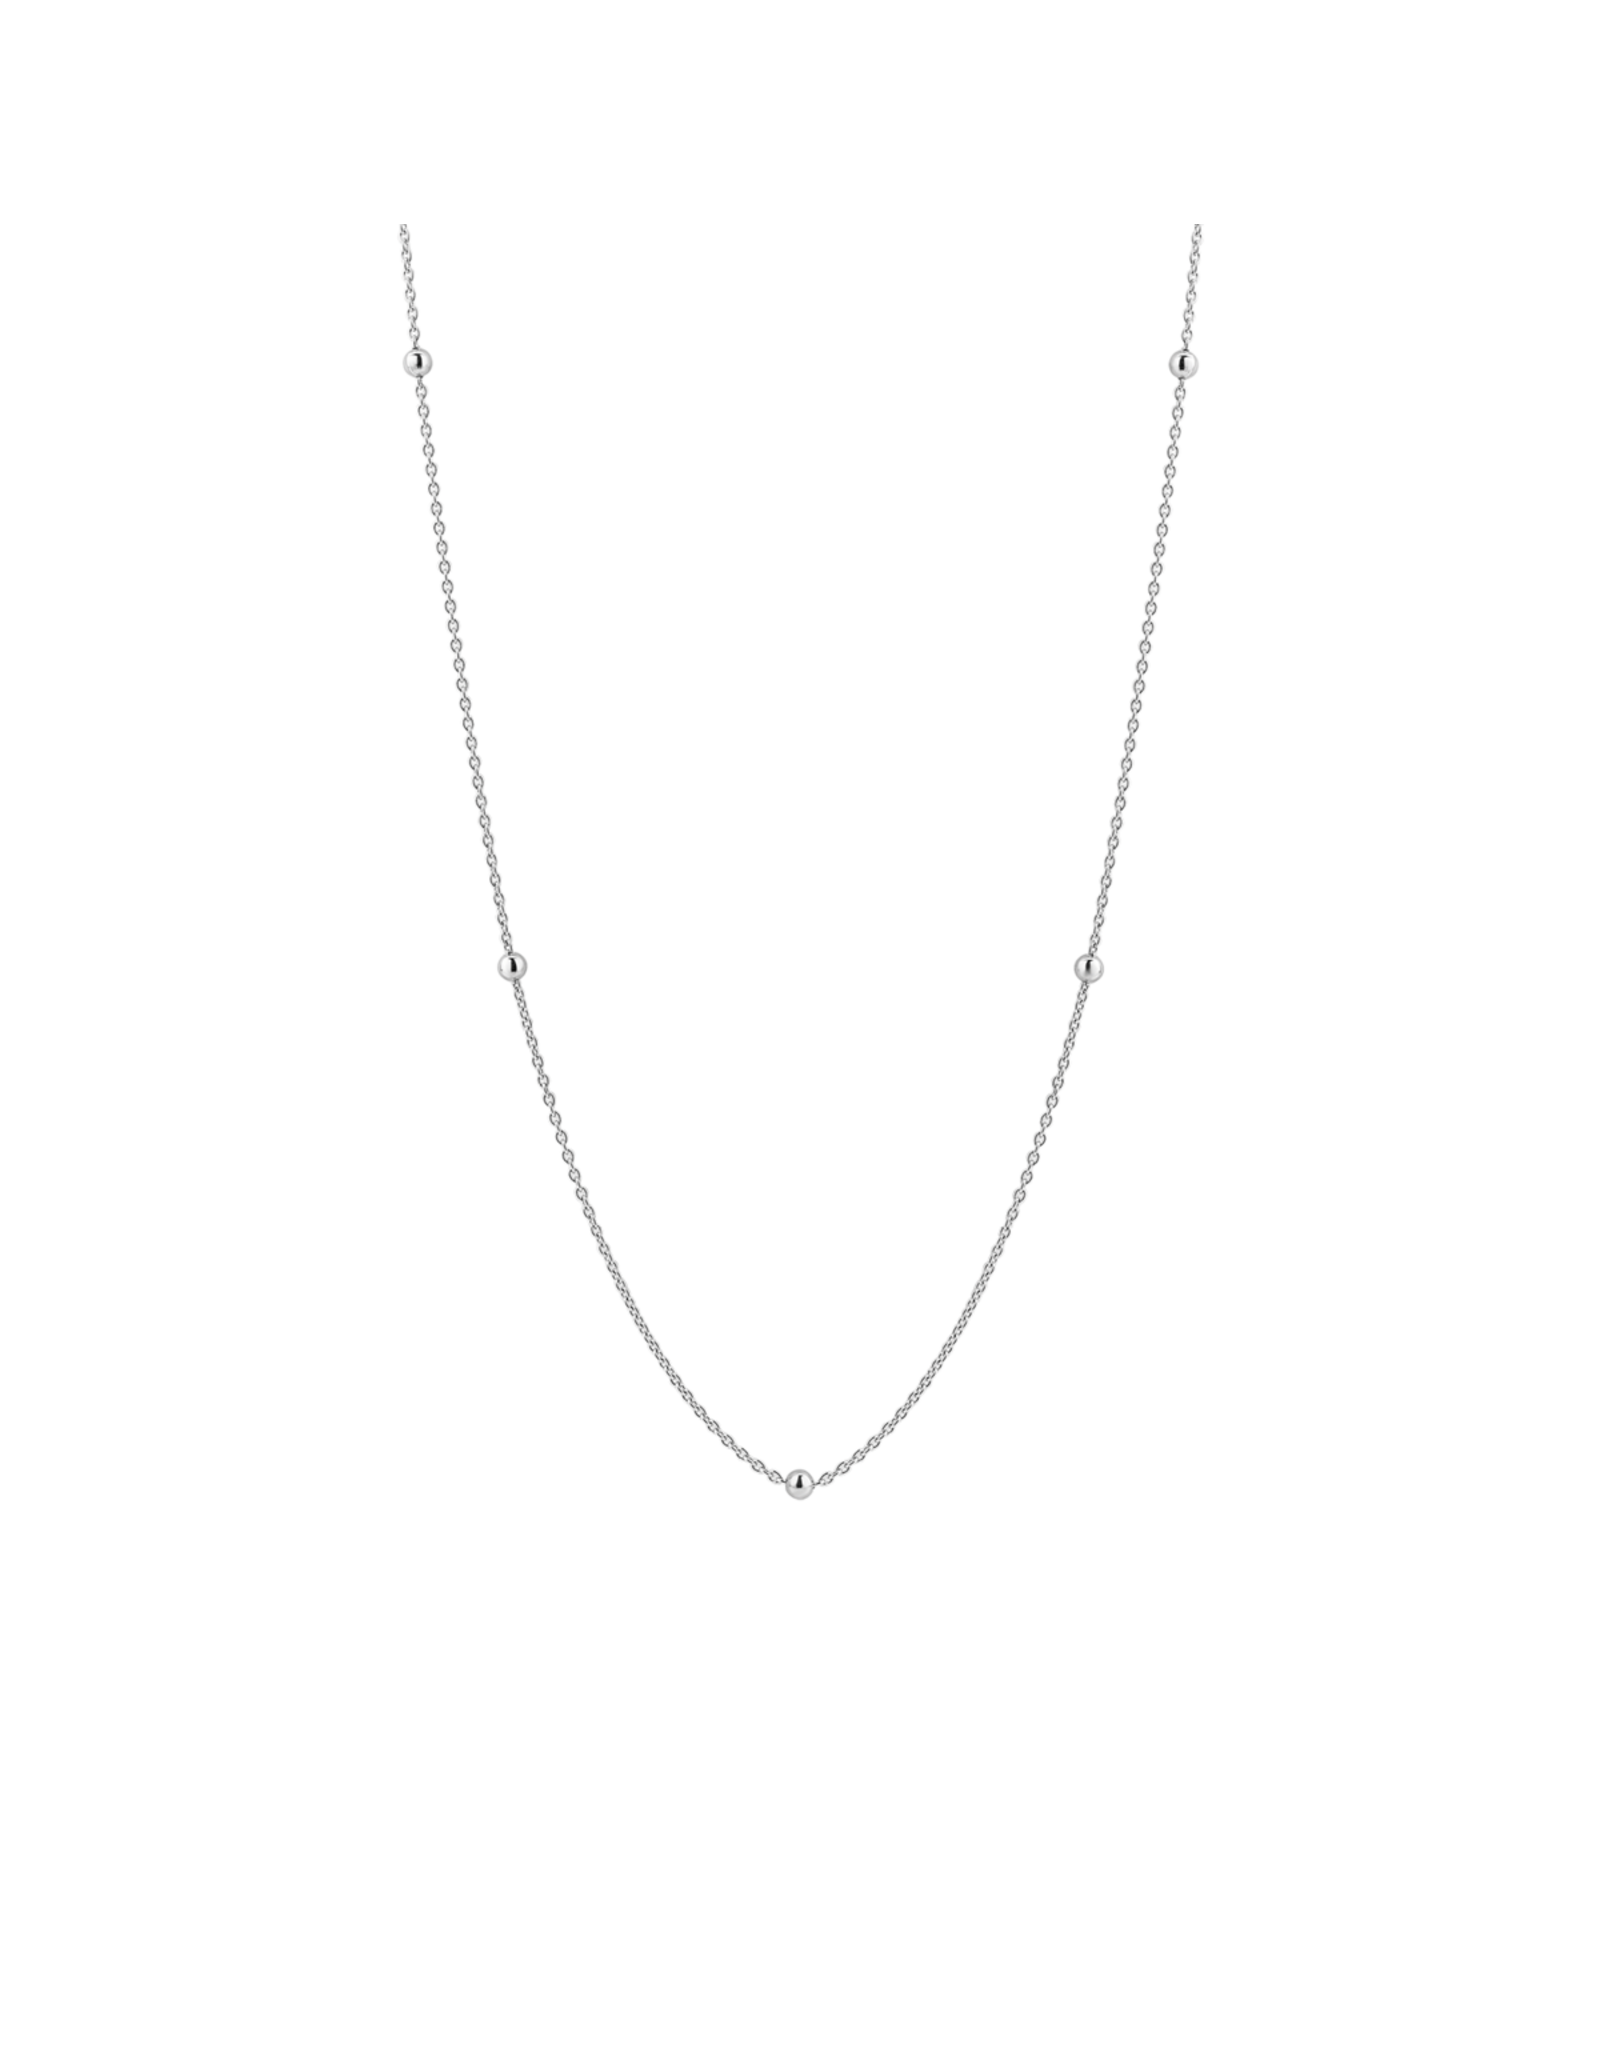 Minimalist Silver Layering Necklace - 3934SI/60